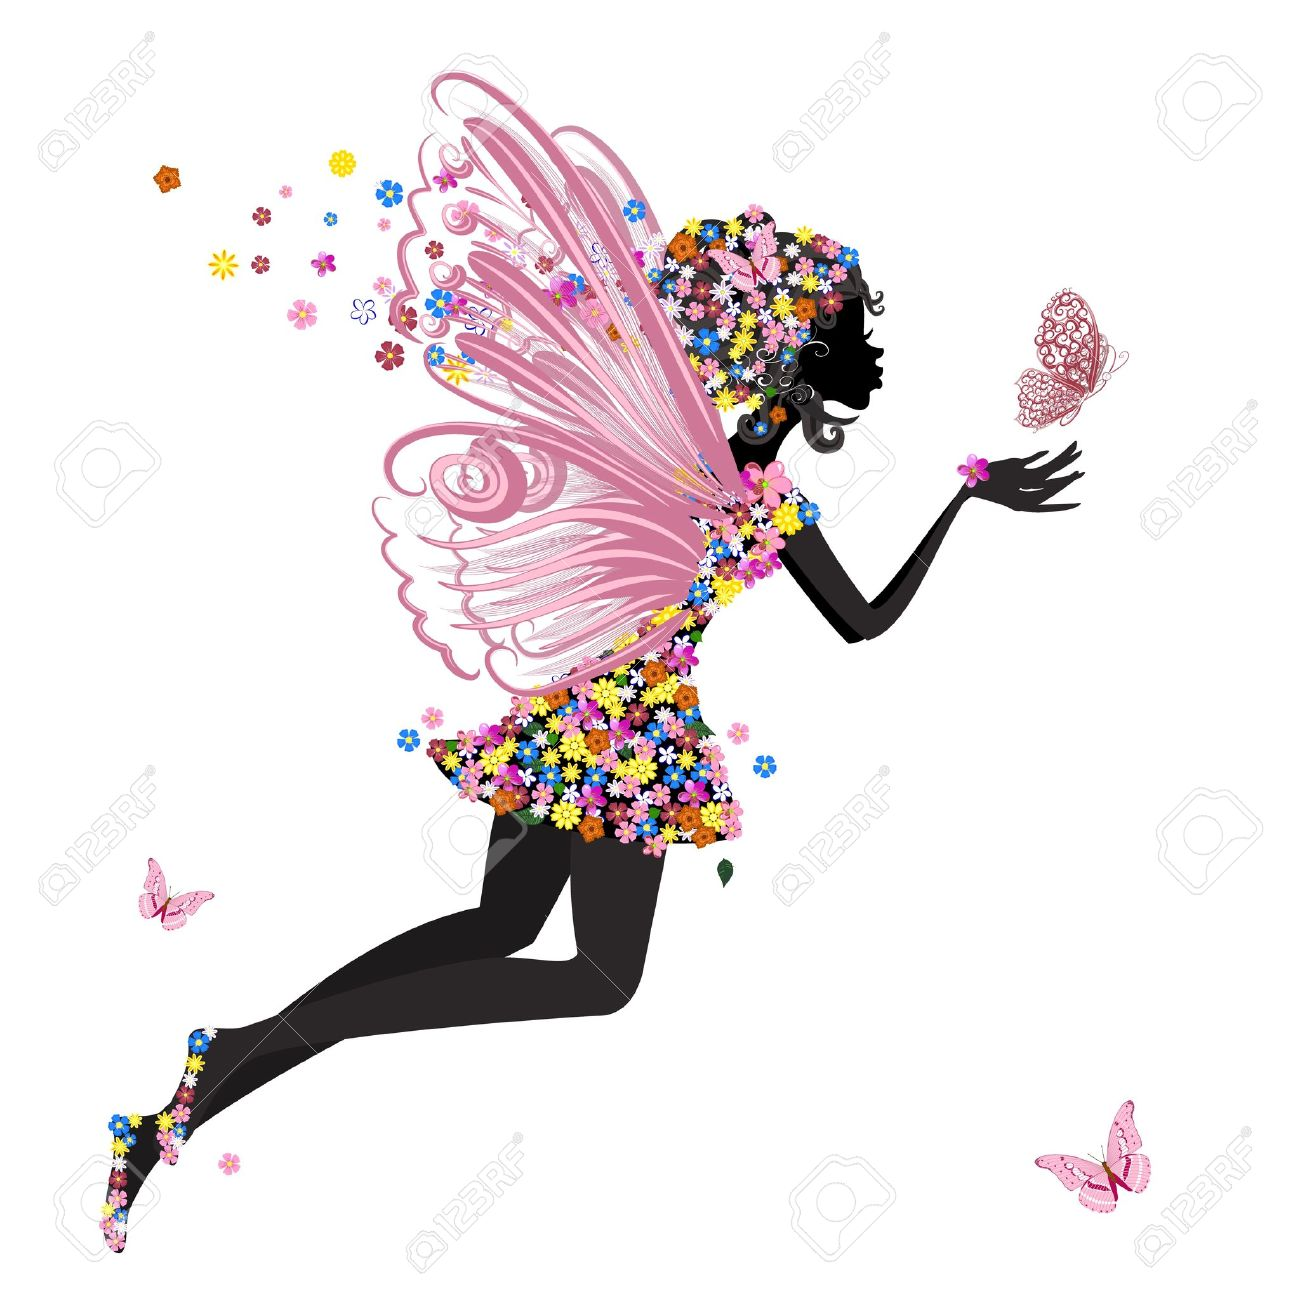 Pencil and in color. Butterfly clipart angel